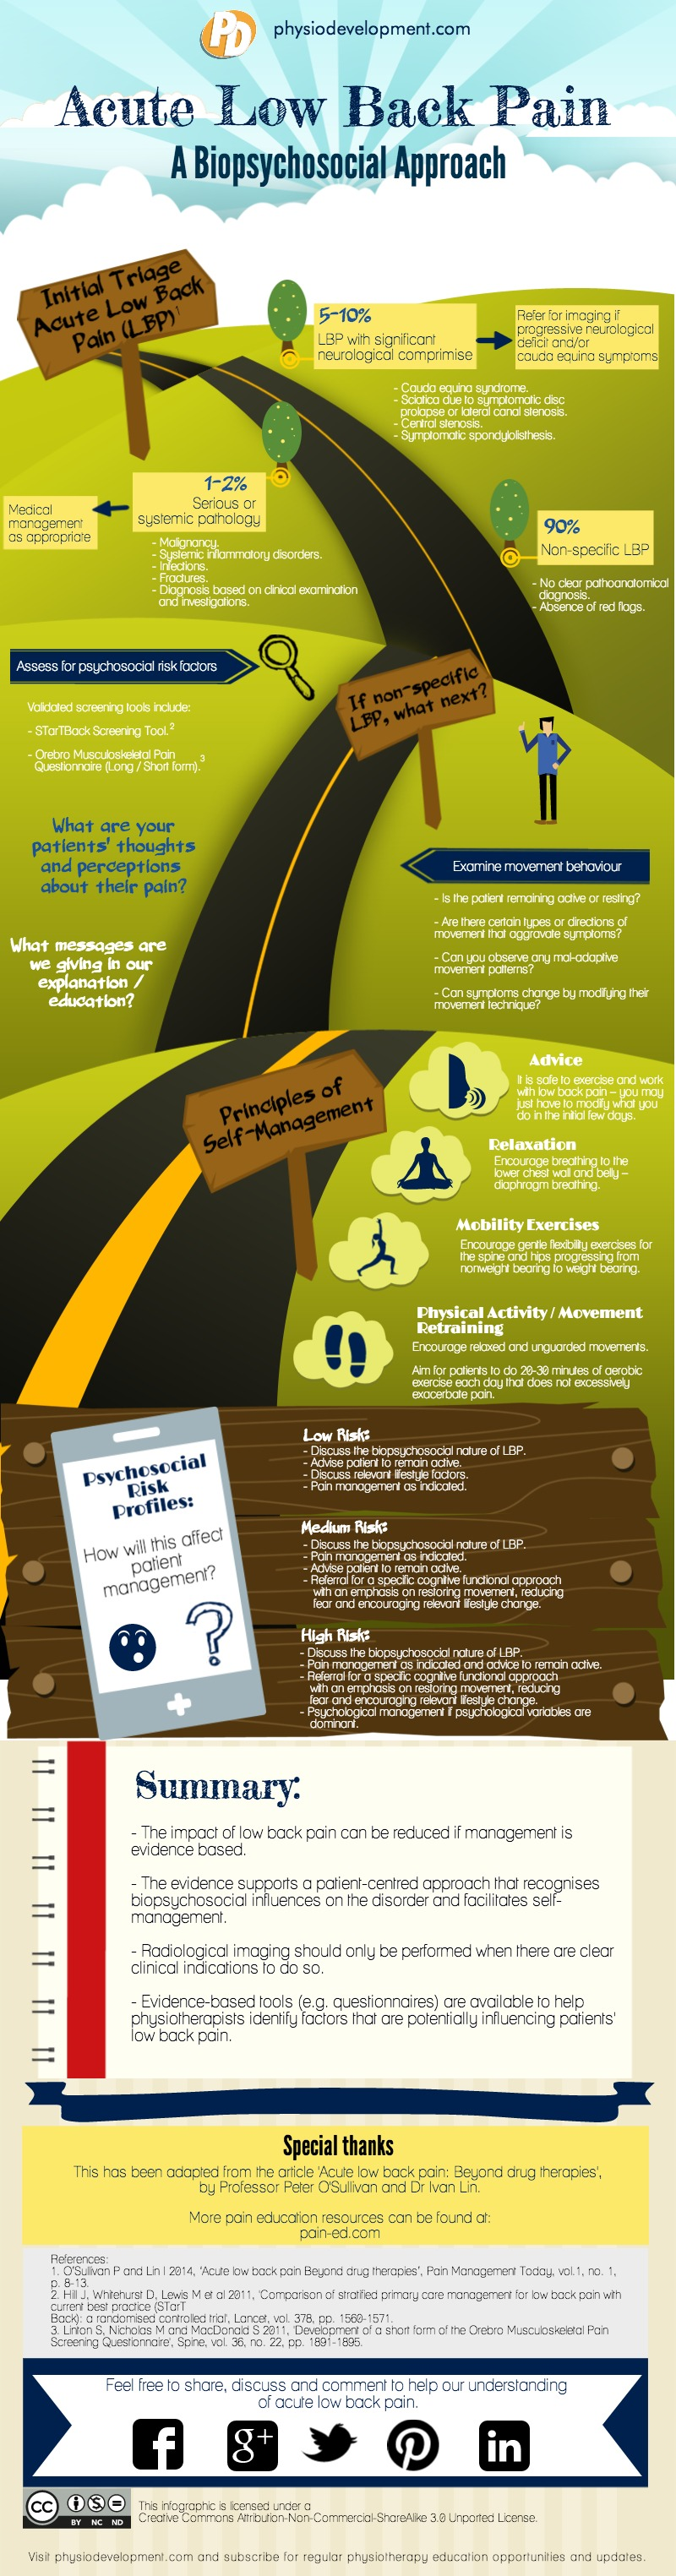 Acute-Low-Back-Pain_infographic